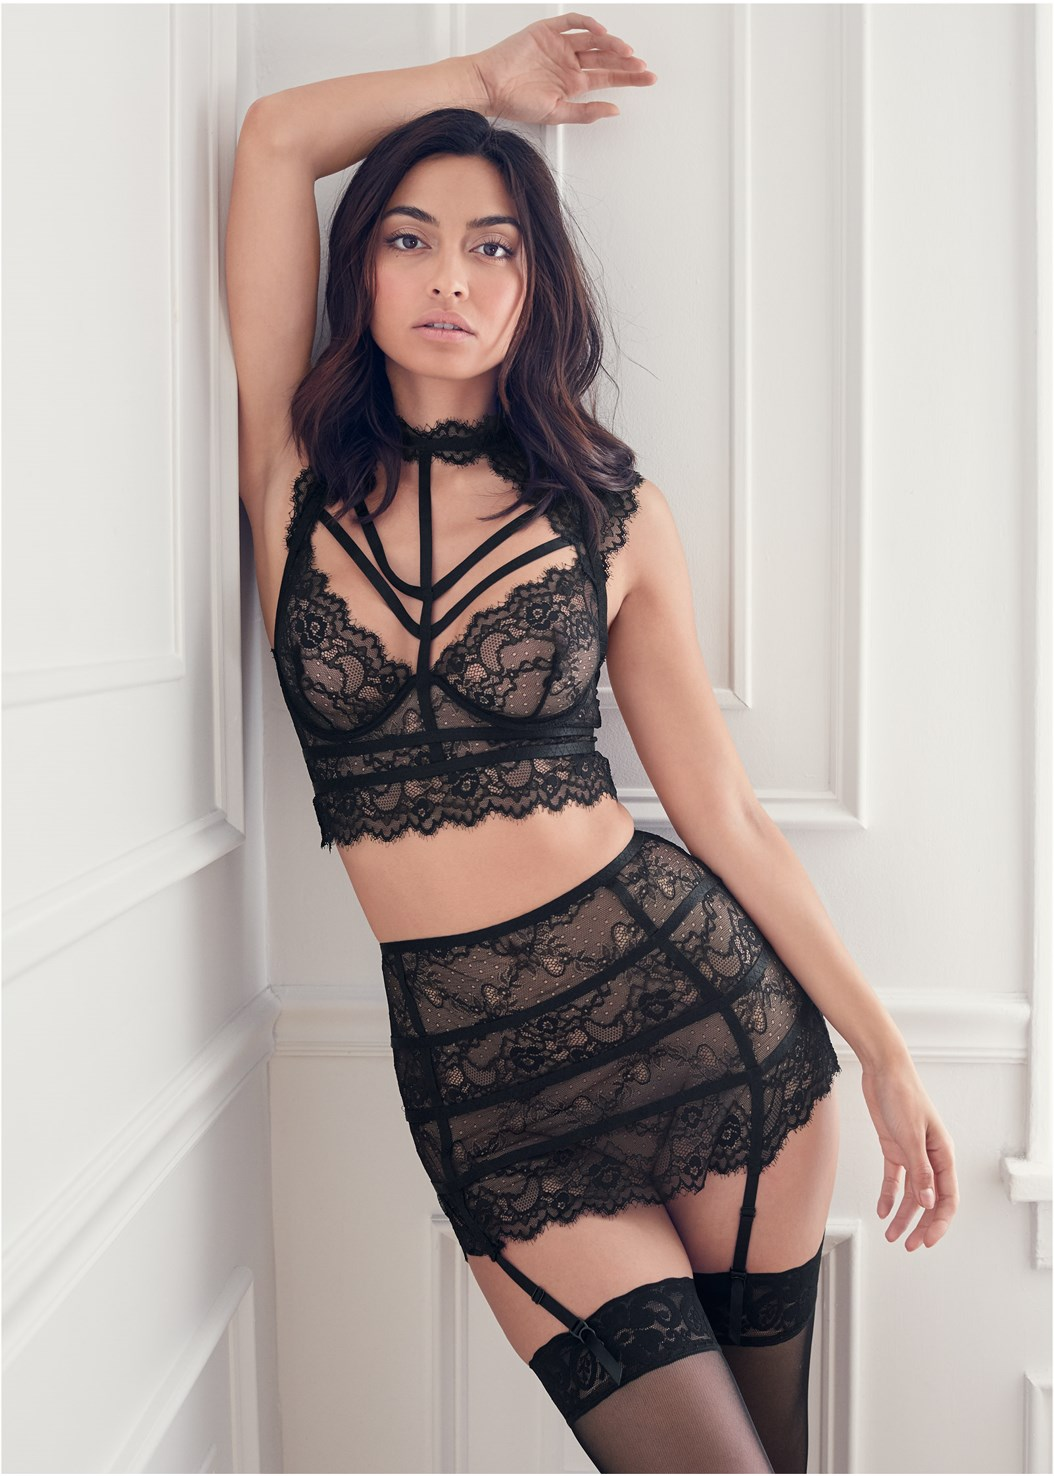 Lace Bra Skirt Set,Mesh Thigh Highs With Lace